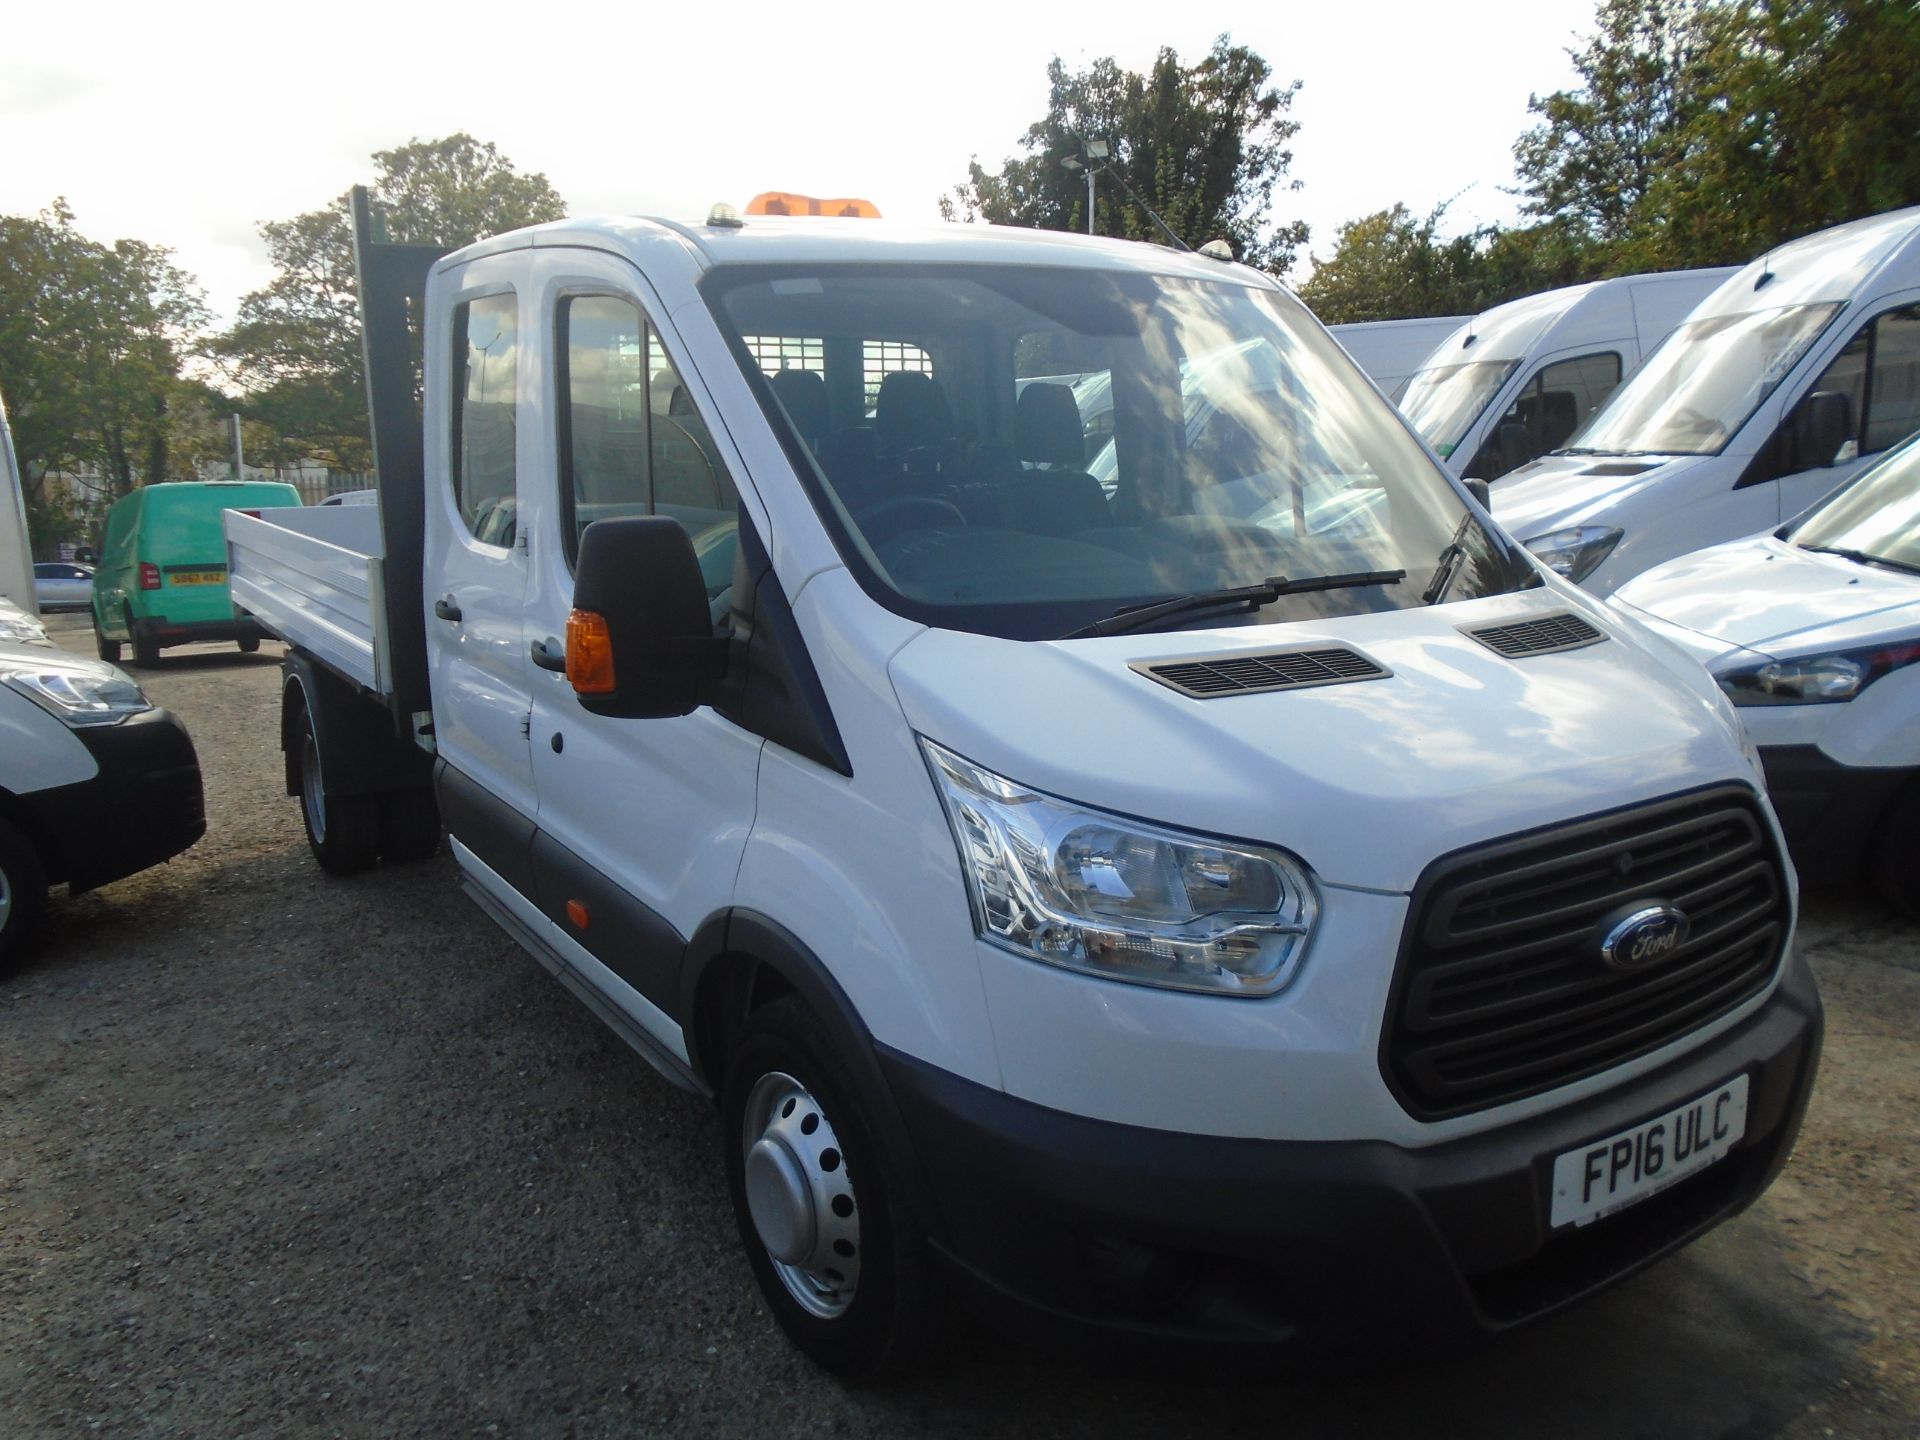 2016 Ford Transit 2.2 Tdci 125Ps Double Cab Chassis (FP16ULC)